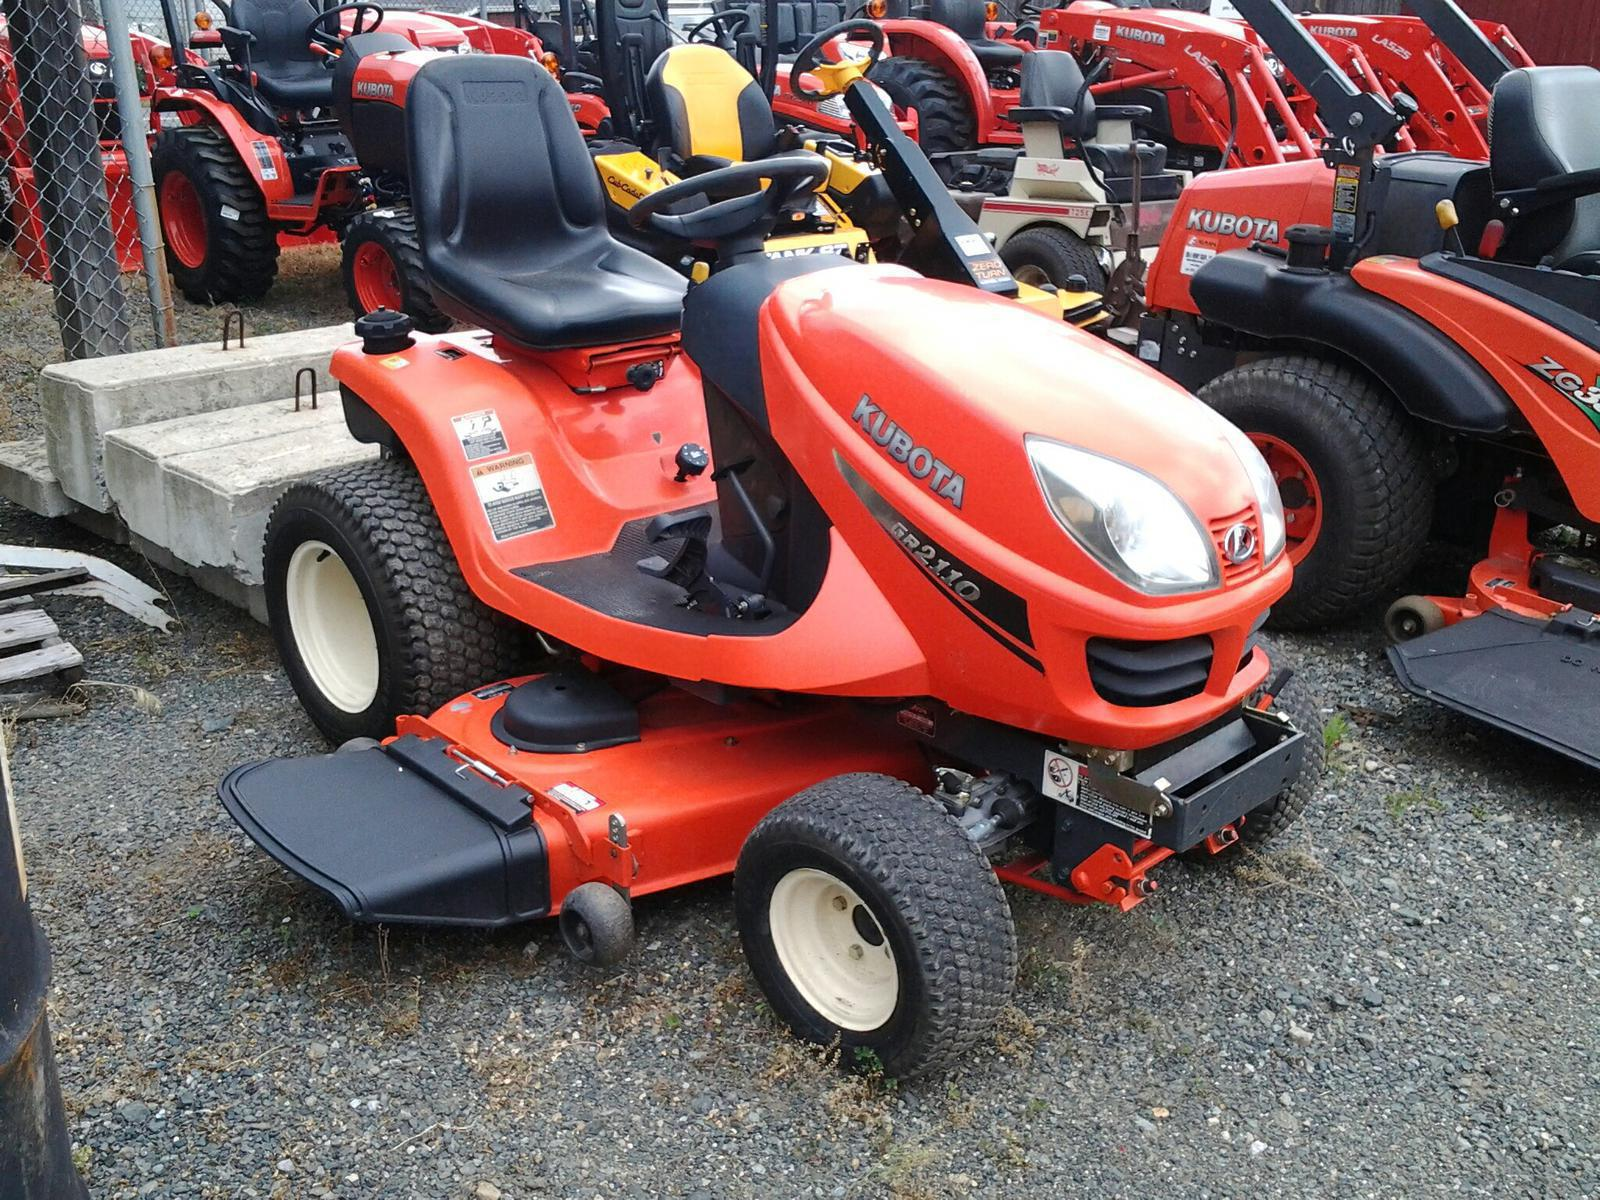 2008 kubota gr2110 garden tractor for sale in new berlinville pa erb henry equipment 610 367 2169 - Garden Tractors For Sale